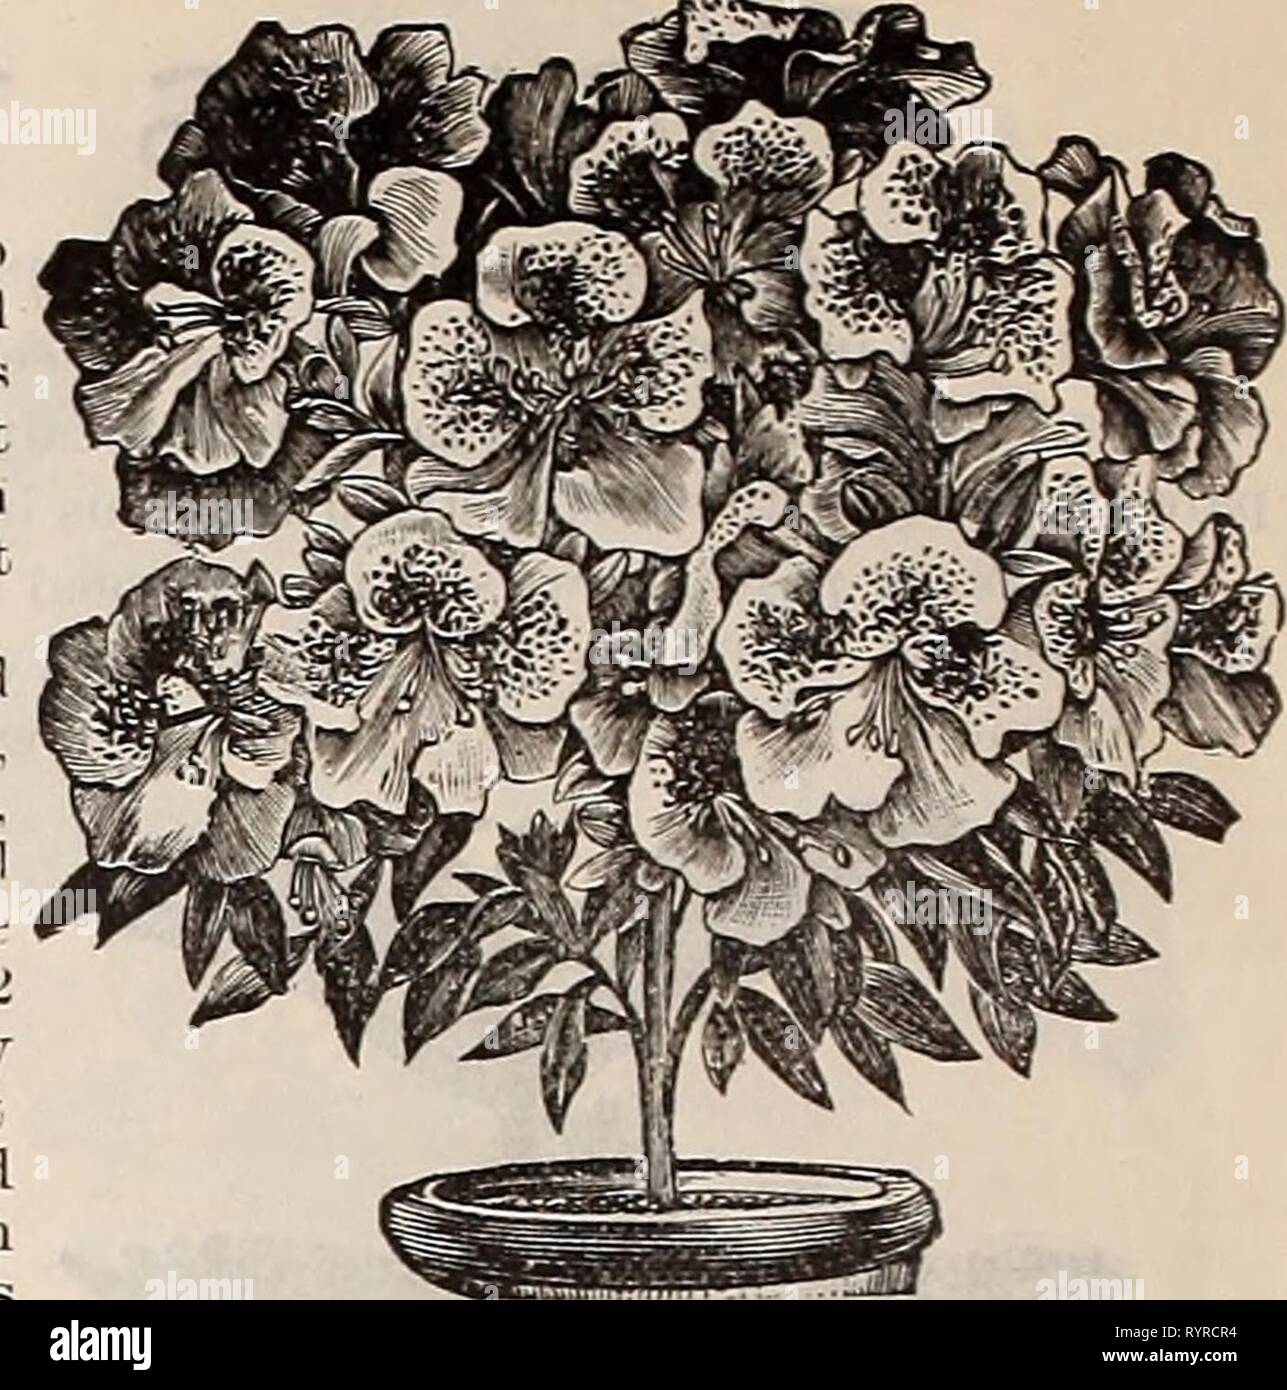 Dreer's quarterly wholesale price list Dreer's quarterly wholesale price list of seeds, plants, bulbs, &c. : summer edition July 1895 August . dreersquarterlyw1895henr_2 Year: 1895  12 DREER'S WHOLESALE PRICE LIST. Inprl Order's for1 ib®$.    We are now booking orders for fall delivery. Bayers who use a quantity of this most popular Easter blooming plant, will find it to their interest to place their orders for next season's wants early, thereby securing the choice of the stock at lowest cost for transportation, as the plants can be forwarded witli perfect safety during October, by fast frei - Stock Image